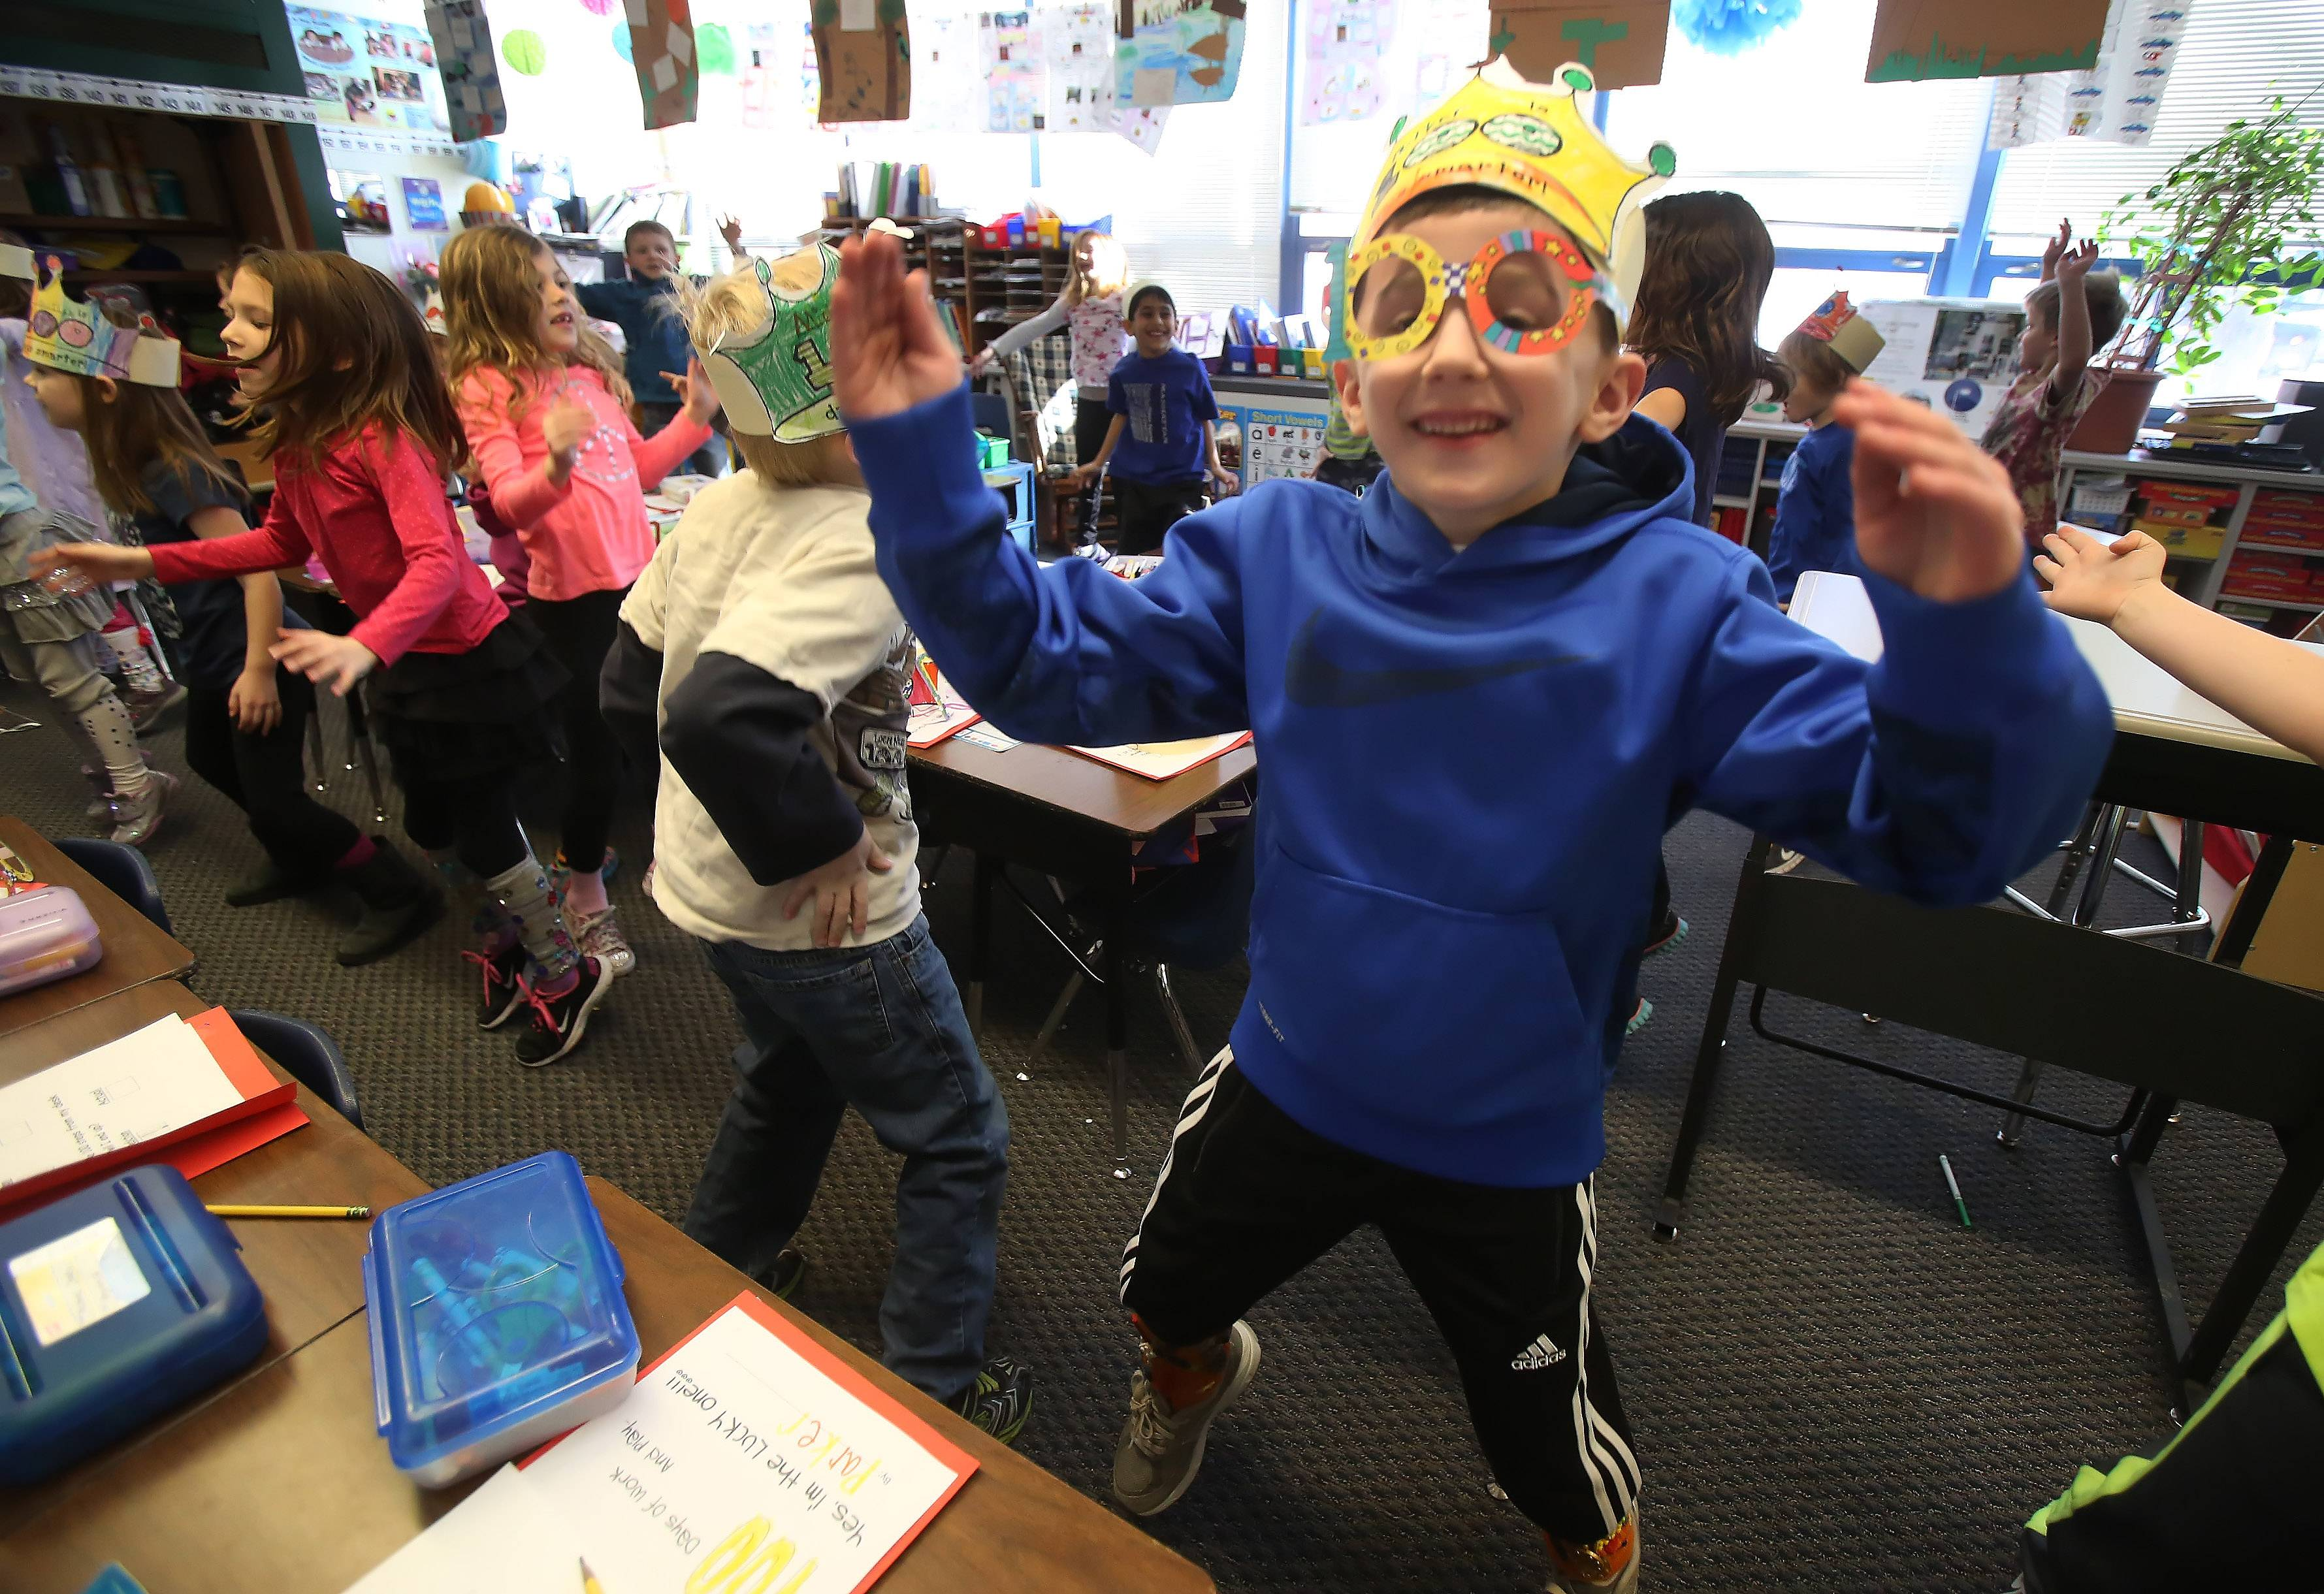 Parker Swearingin, right, joins other first grade students in counting jumping jacks during 100 seconds as they celebrate 100 days of school Tuesday at Copeland Manor School in Libertyville. The students participated in various activities involving 100, including games, exercises, writing and art projects.